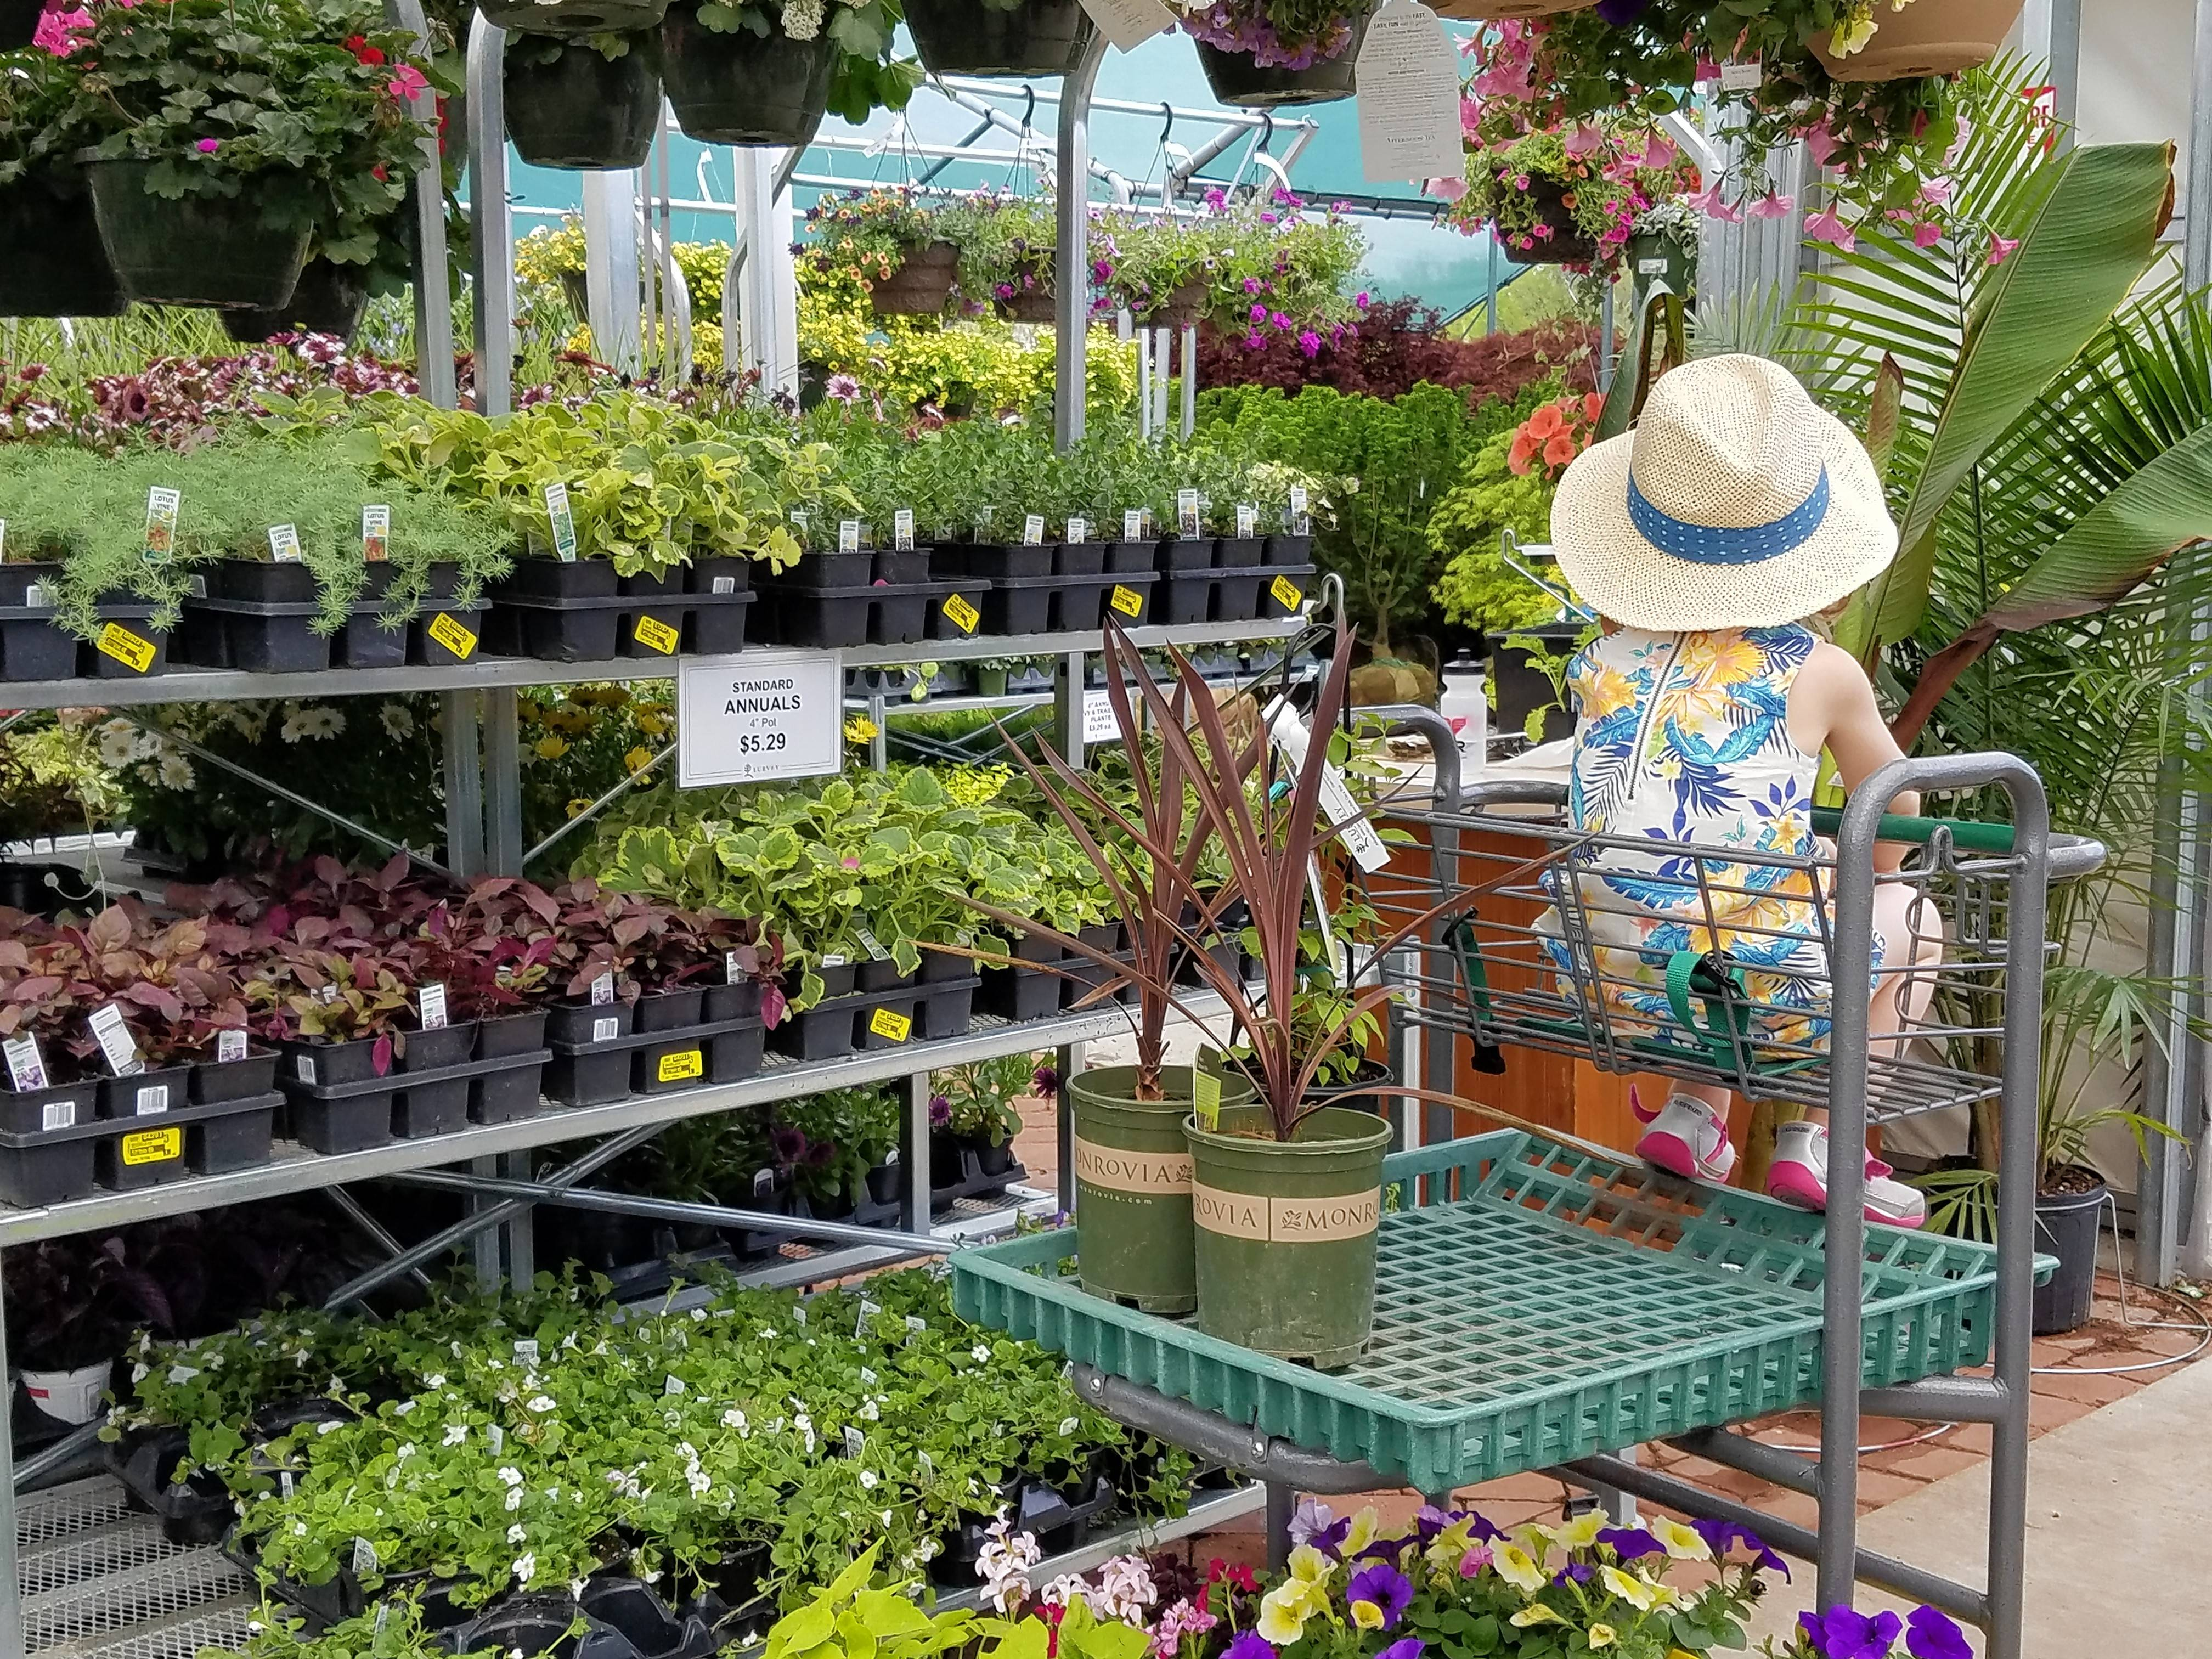 Last year Lurvey Garden Center opened its new 14,000-square-foot building with wider aisles and much more room for garden essentials.